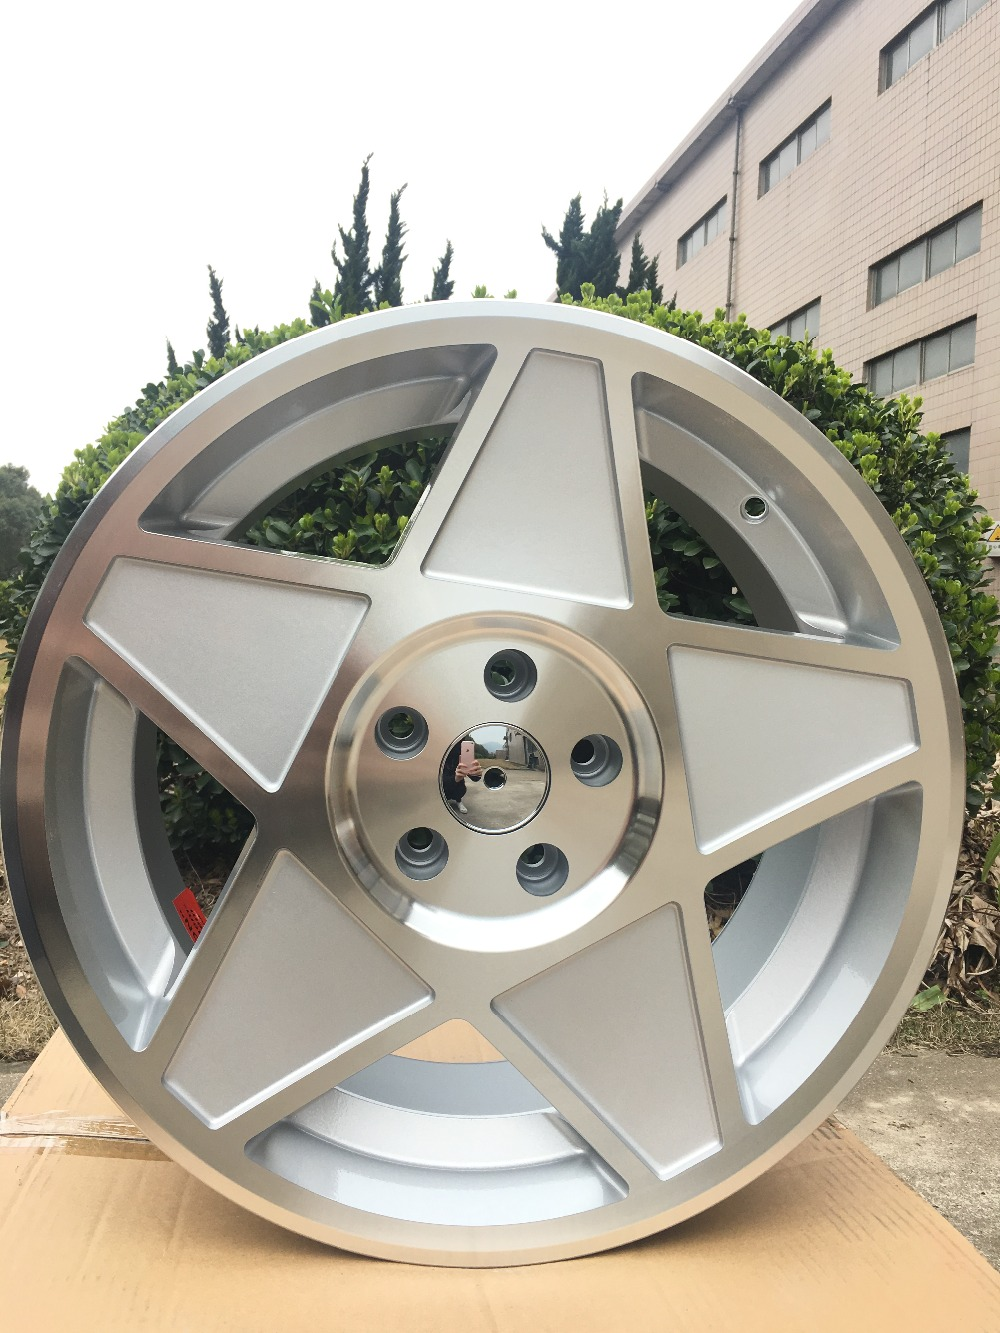 18 STAR STYLE SILVER RIMS VW VOLKSWAGEN GOLF GTI JETTA GLI PASSAT A3 A4 A5 A6 W030 free ship turbo k03 29 53039700029 53039880029 058145703j n058145703c for audi a4 a6 vw passat 1 8t amg awm atw aug bfb aeb 1 8l